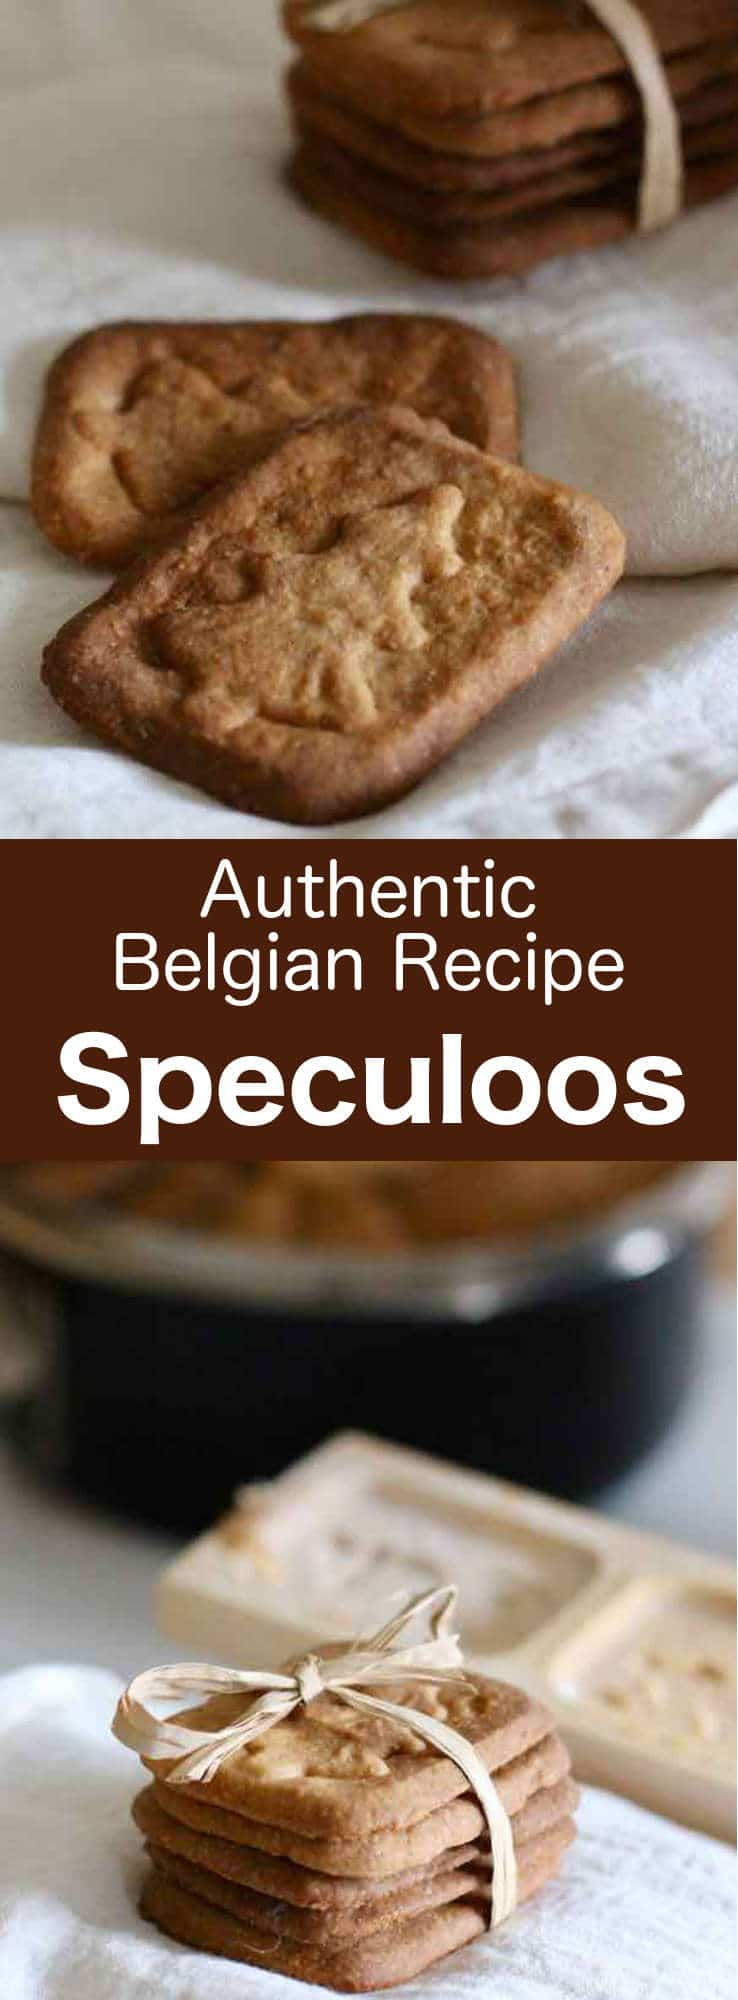 Speculoos are delicious and traditional St. Nicholas cookies from Belgium, with a distinct spiced flavor which can now be enjoyed all year. #cookie #SaintNicholas #StNicholas #Belgium #196flavors